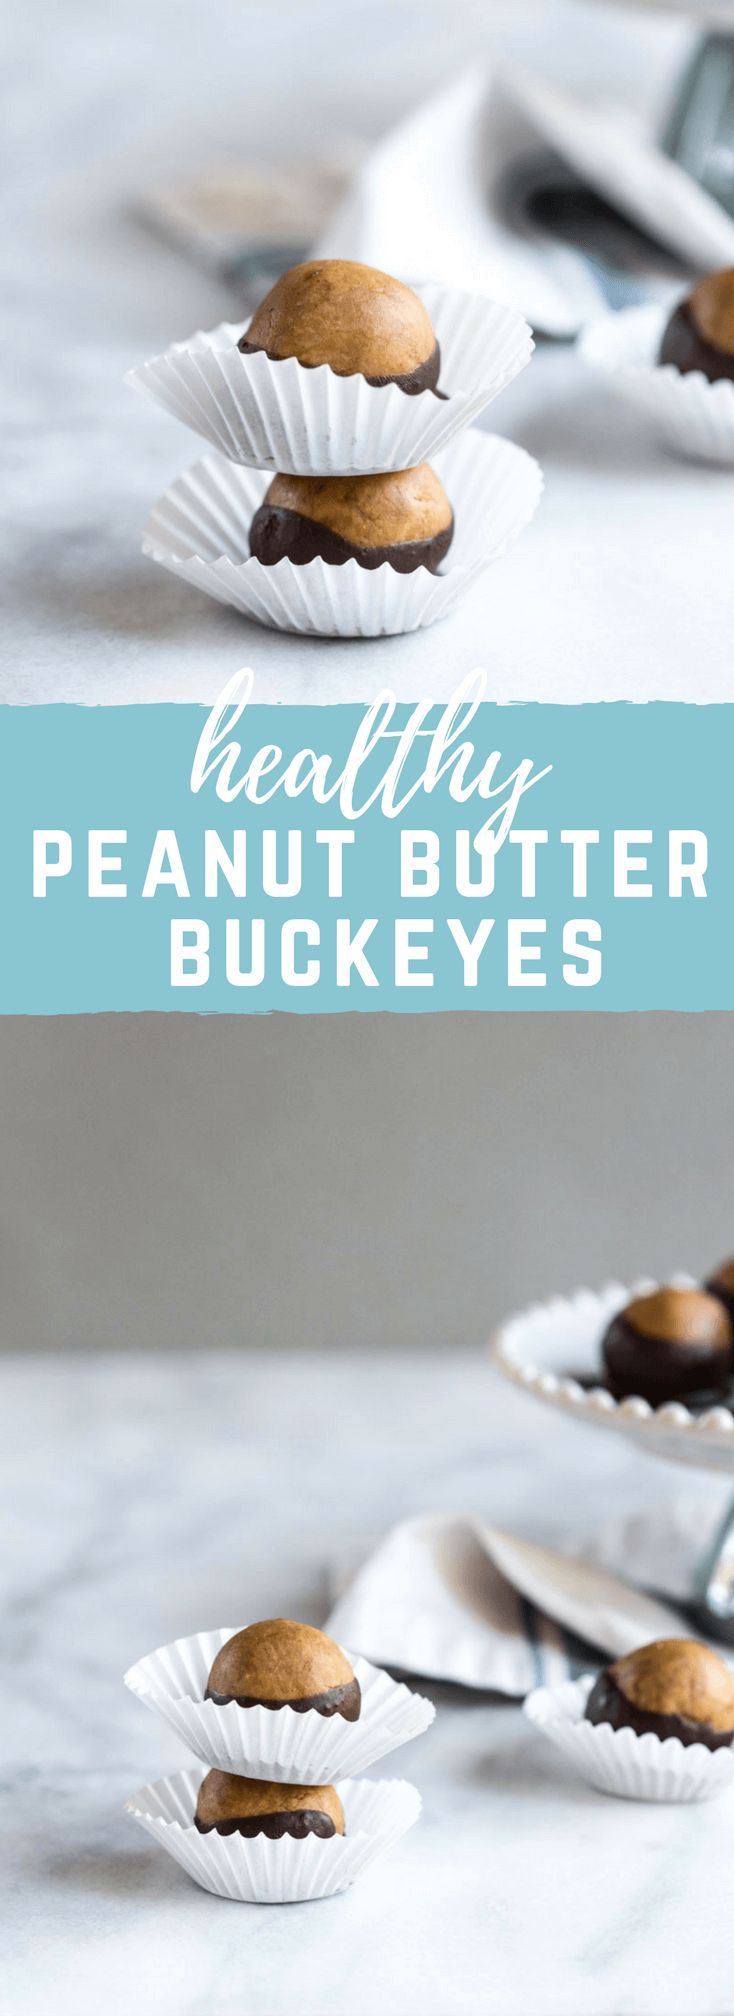 Healthy Peanut Butter Buckeyes my friends. This snack is high in protein and made with peanut butter (duh), peanut butter powder, a touch of maple syrup and dipped in dark chocolate! #peanutbutter #chocolate #buckeyes